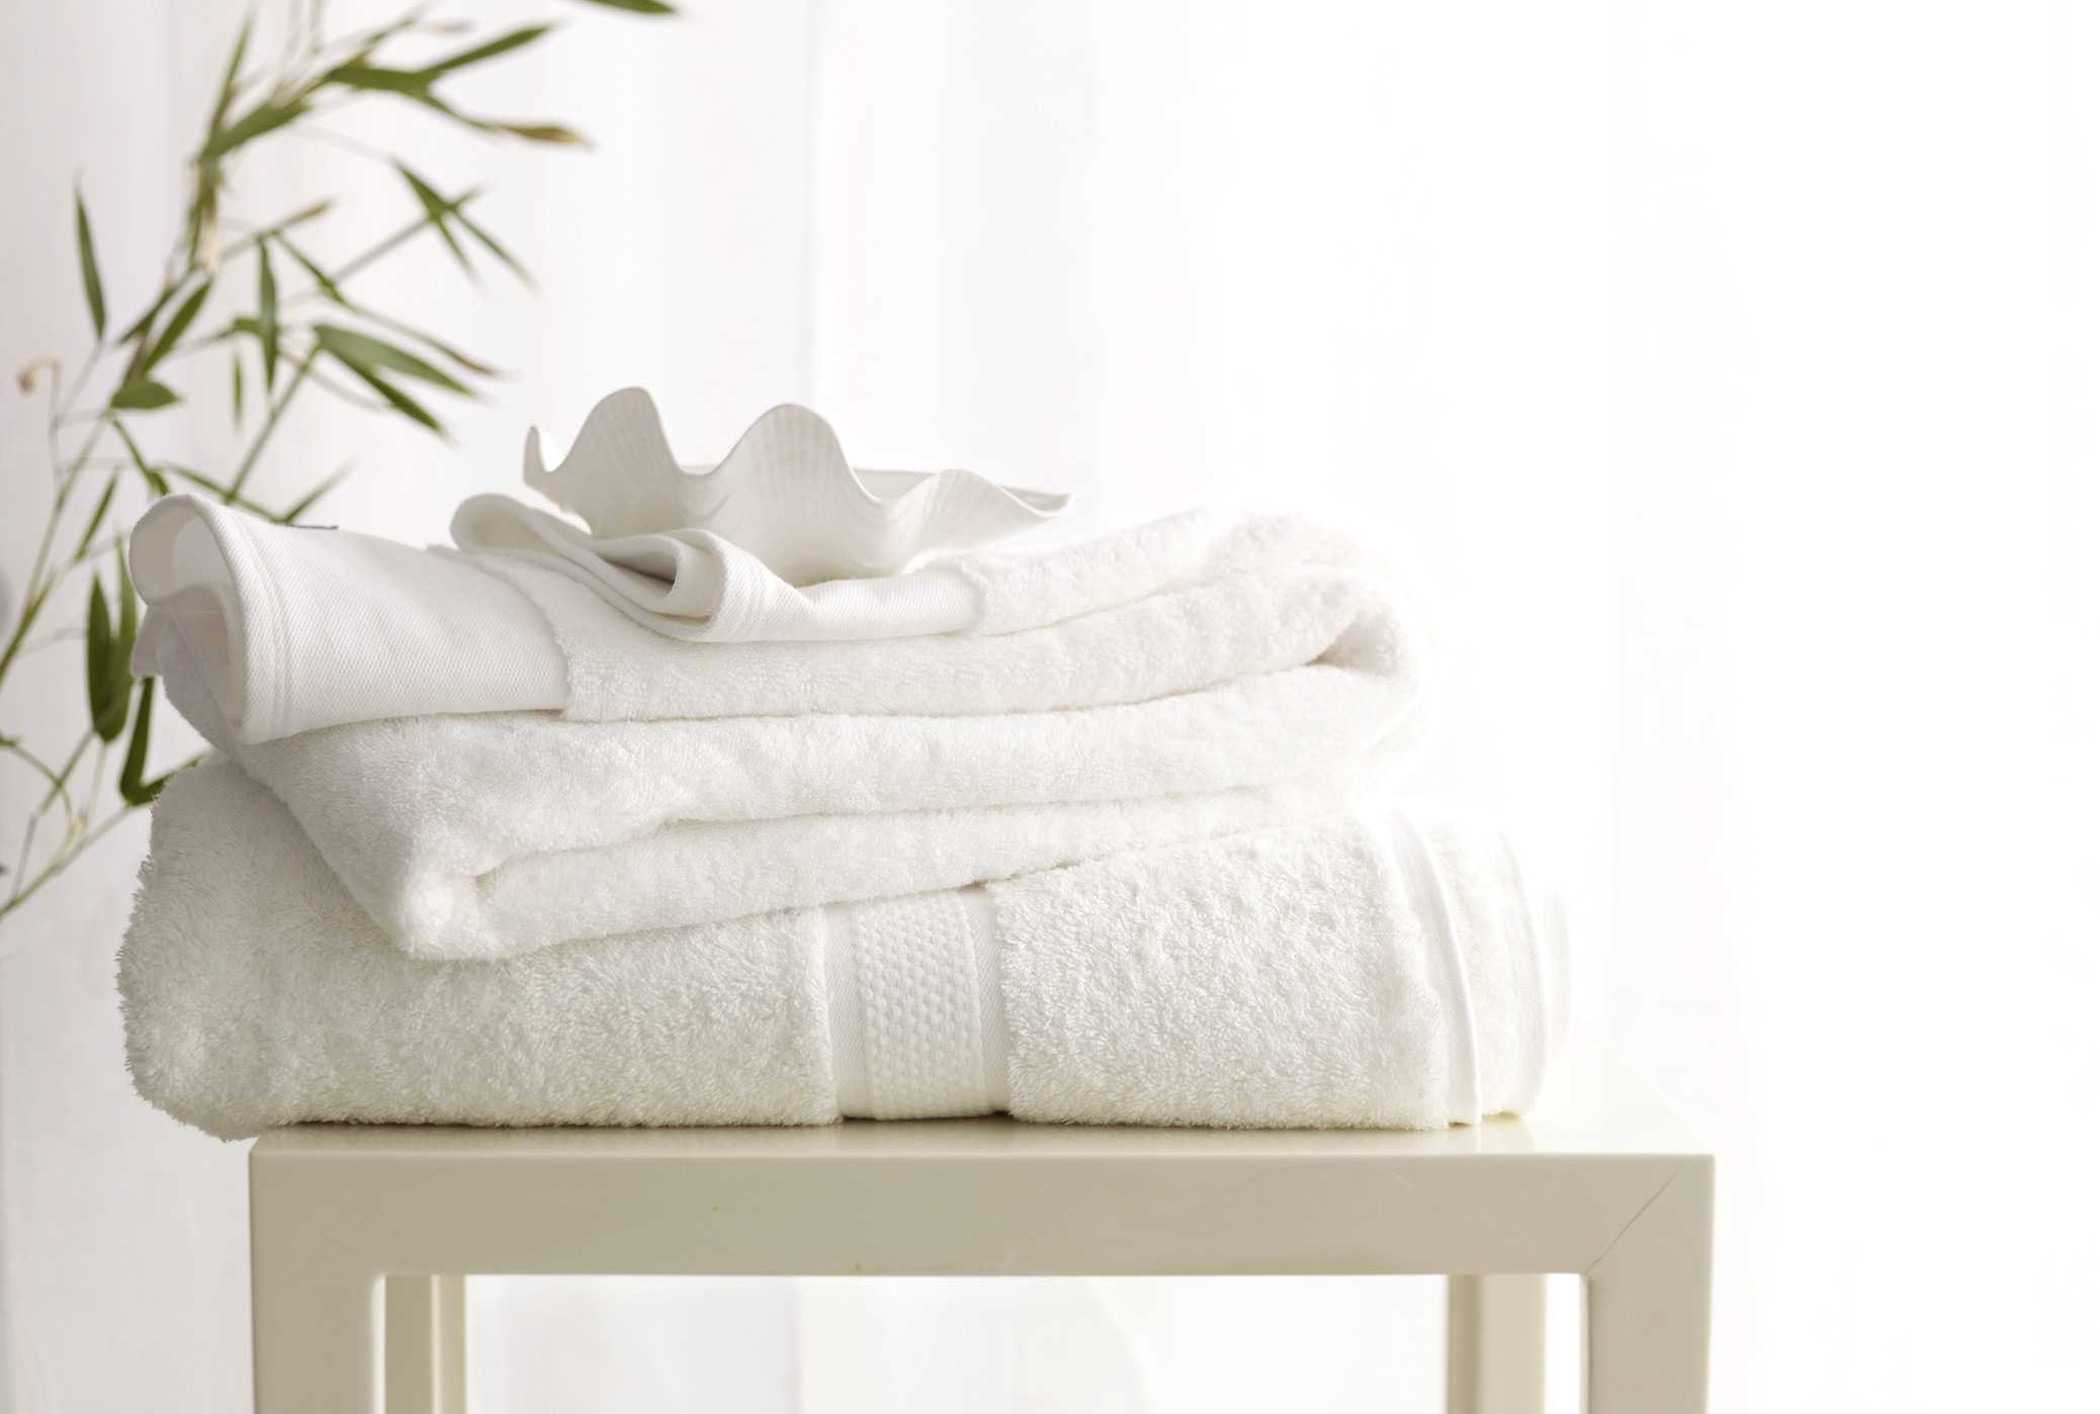 Crisp white towels and linen folded neatly